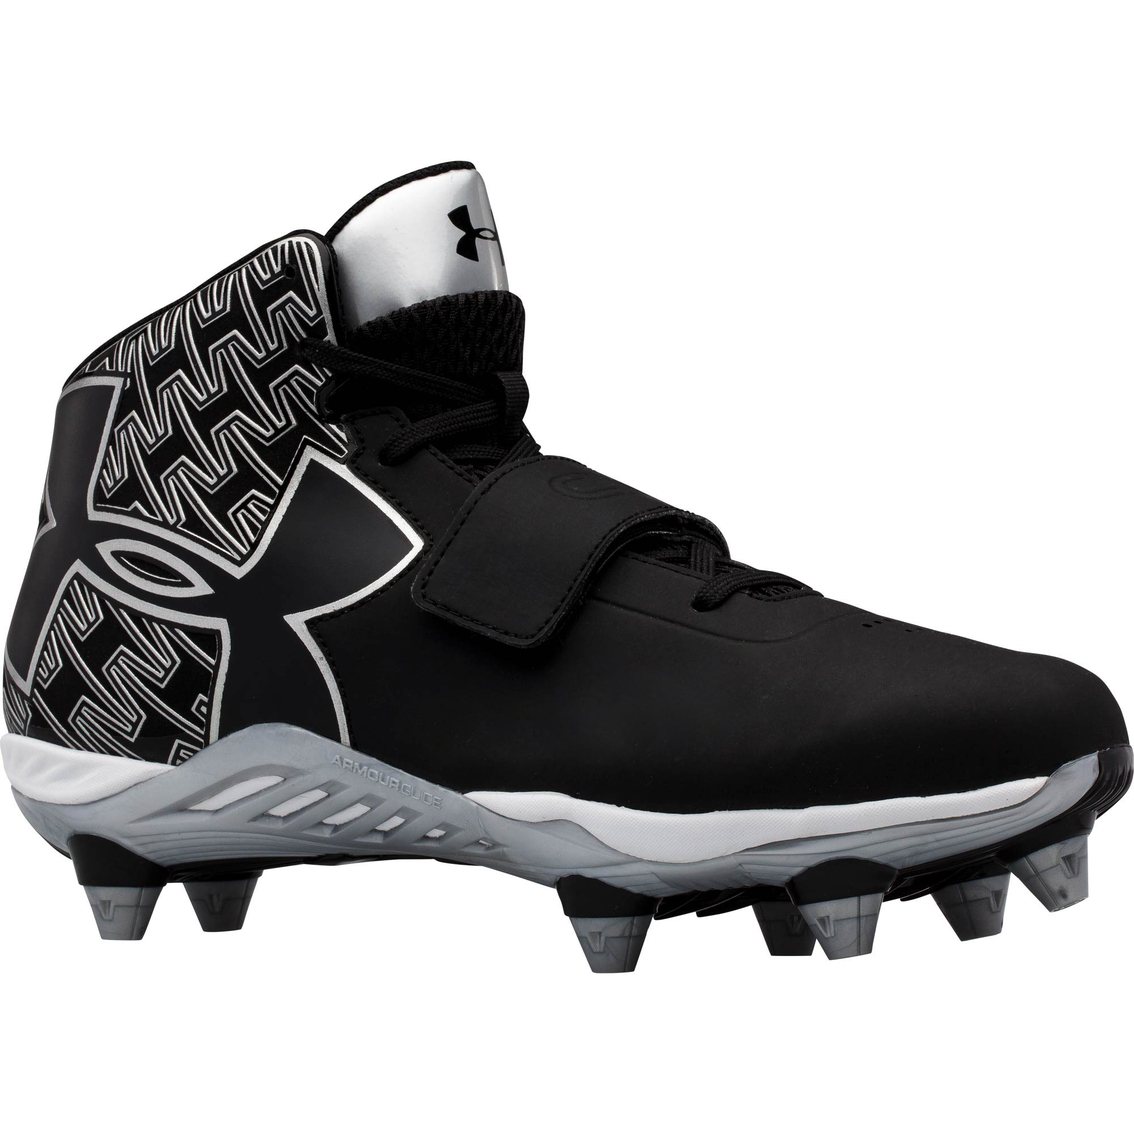 Under Armor Football Cleats Cheap Off57 The Largest Catalog Discounts